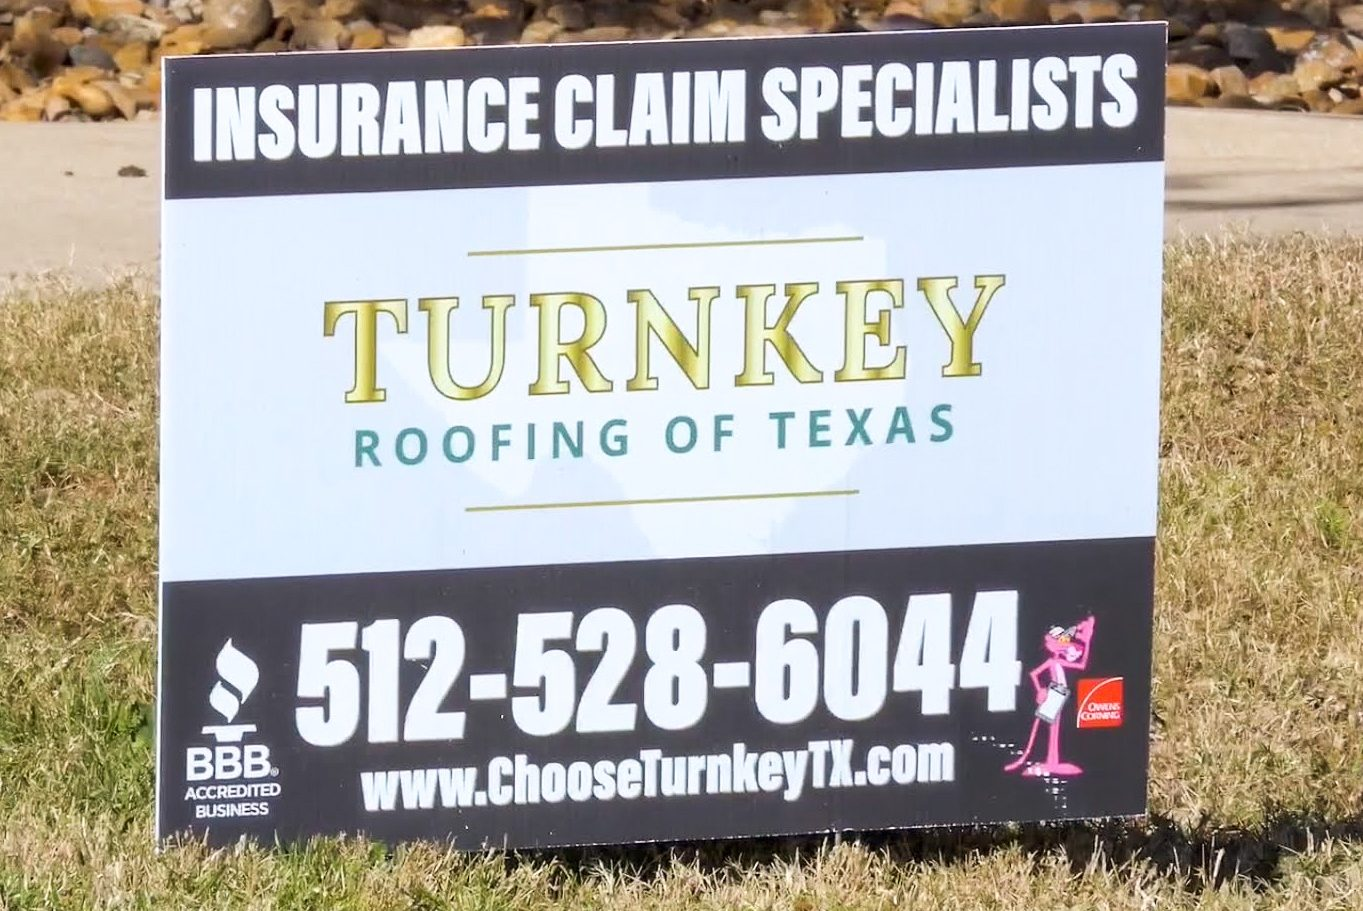 Turnkey Roofing of Texas sign.